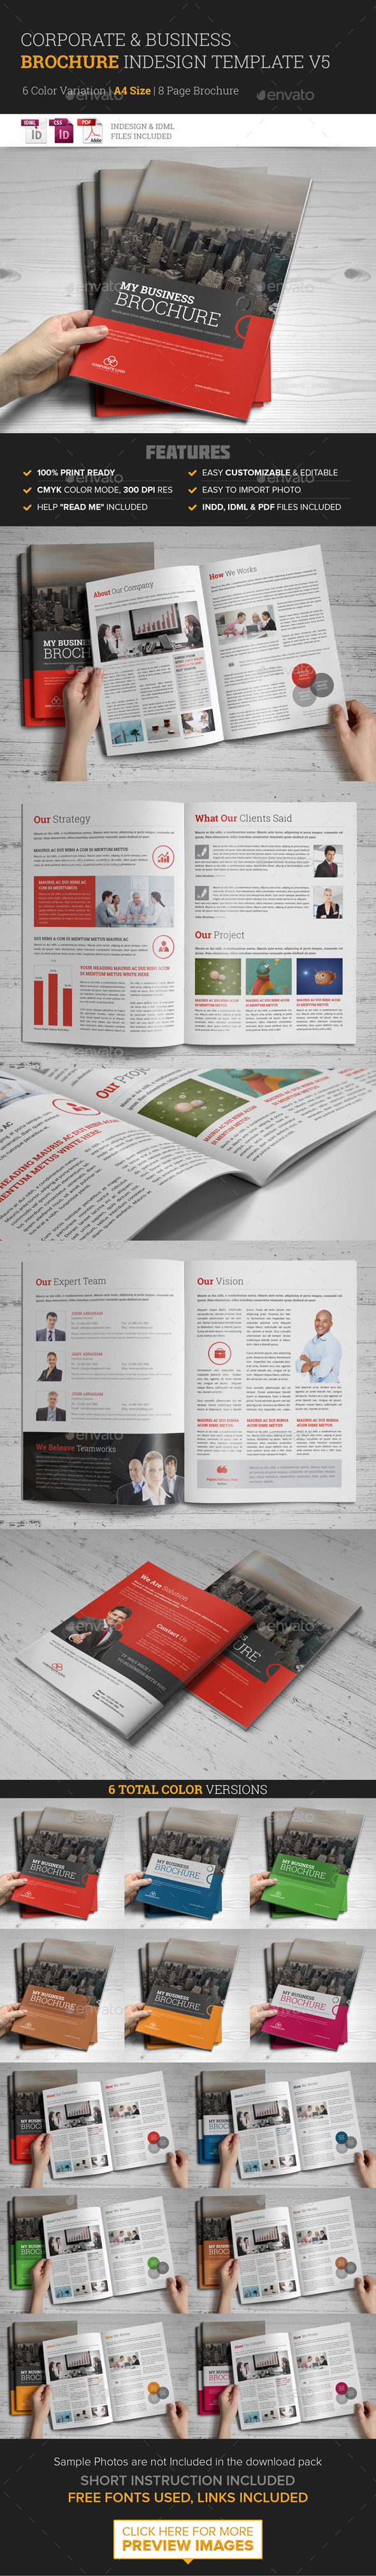 GraphicRiver Corporate Multipurpose Brochure Template v5 9609415